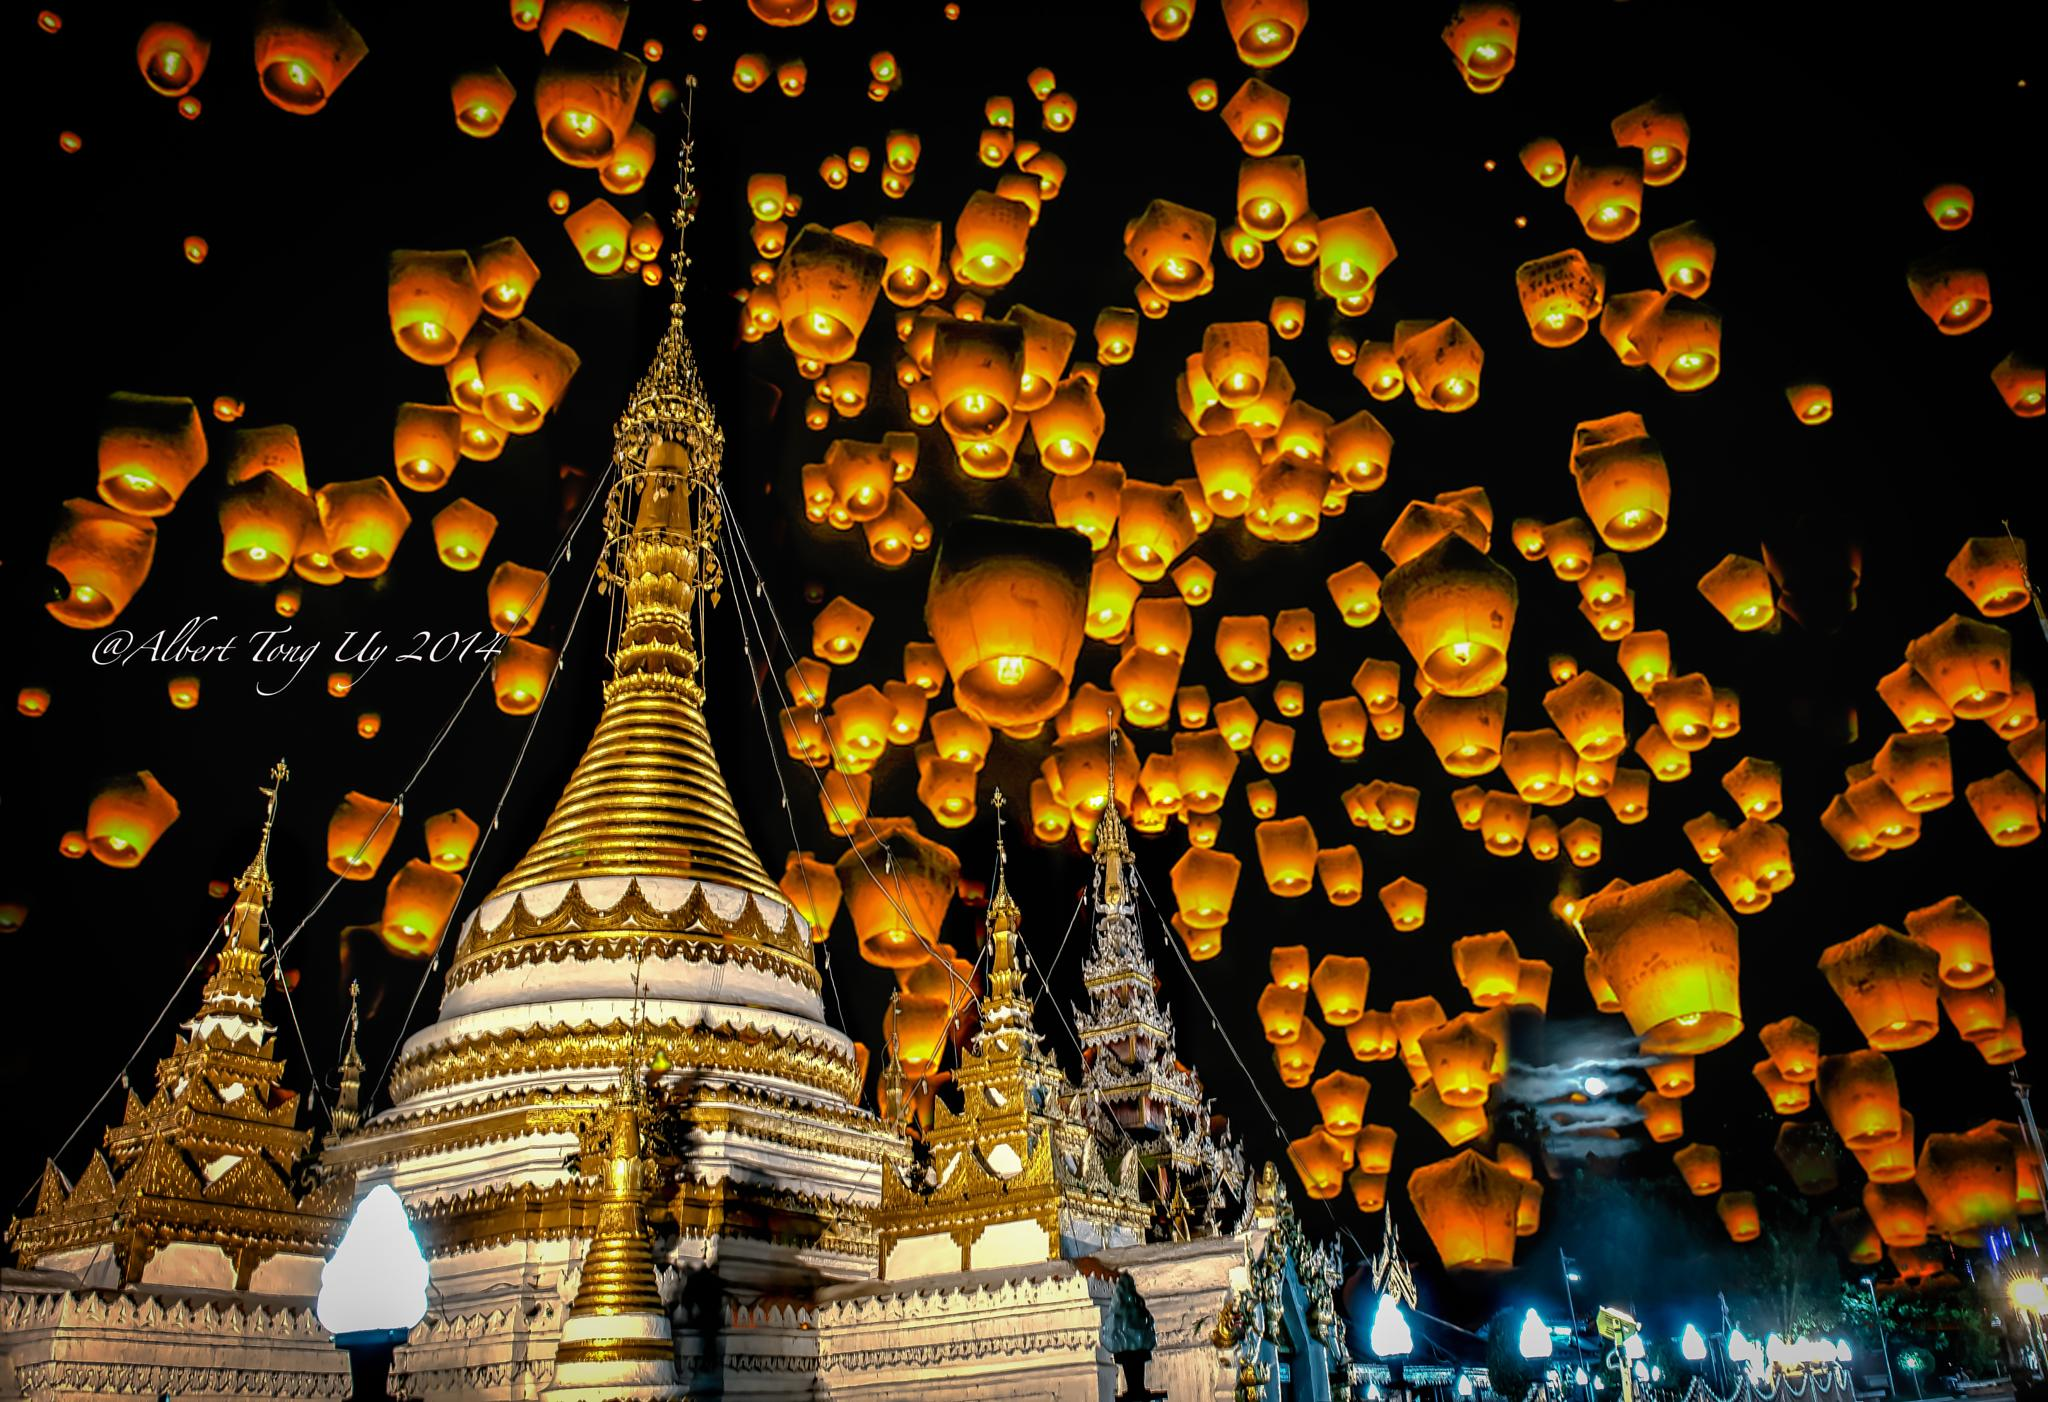 Temple in North Thailand..during the Lantern Festival..photo 13 by iatu8888